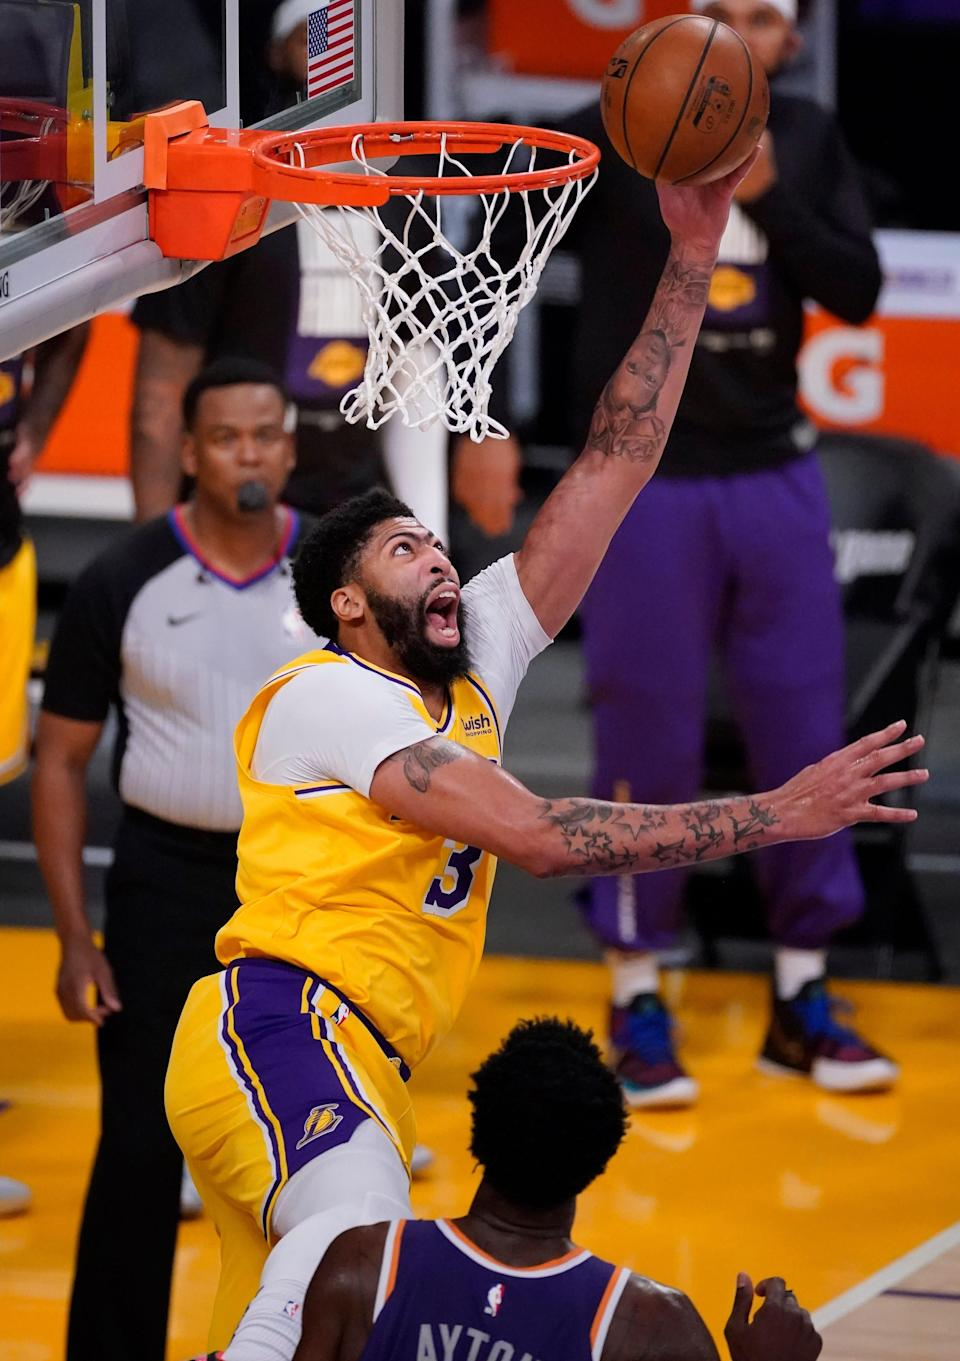 Anthony Davis (3) fueled a big second half to help the Lakers overcome the Suns.